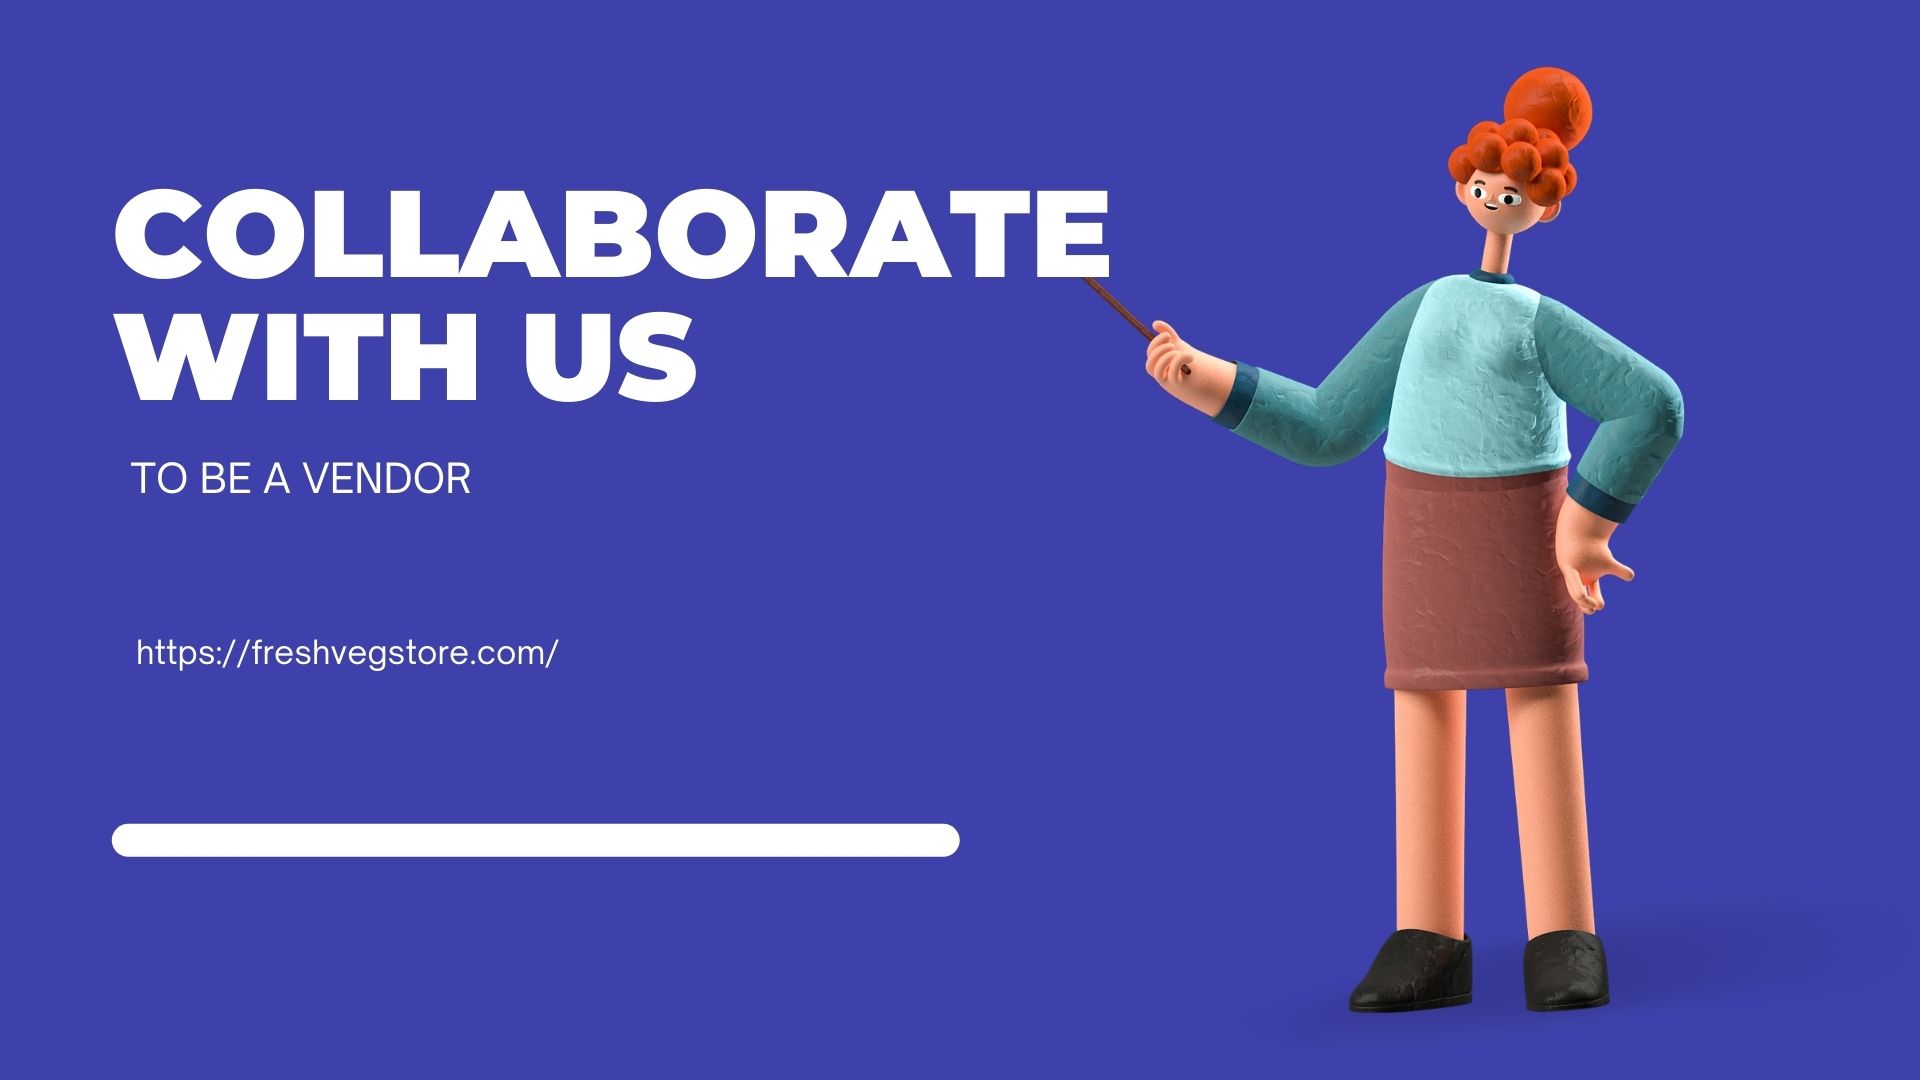 COLLABORATE WITH US TO BE A VENDOR